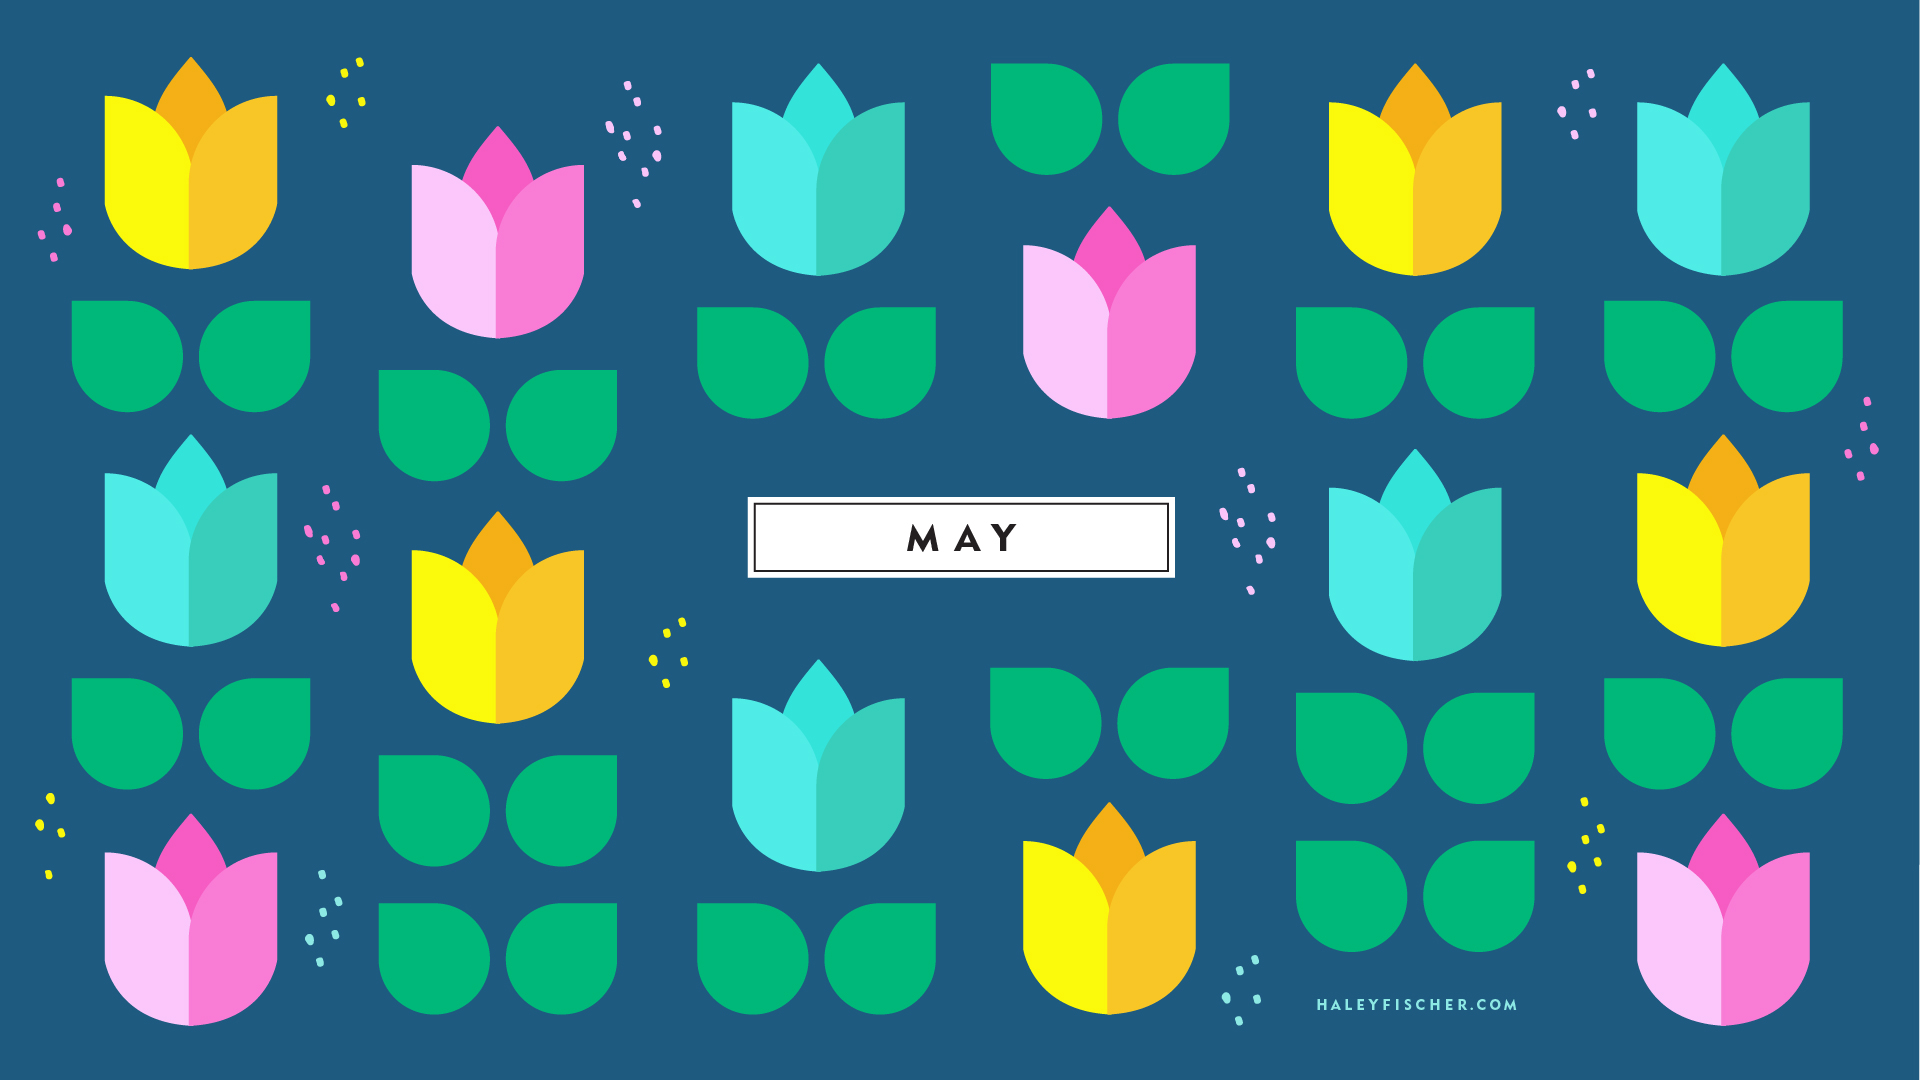 Download May Wallpaper Here